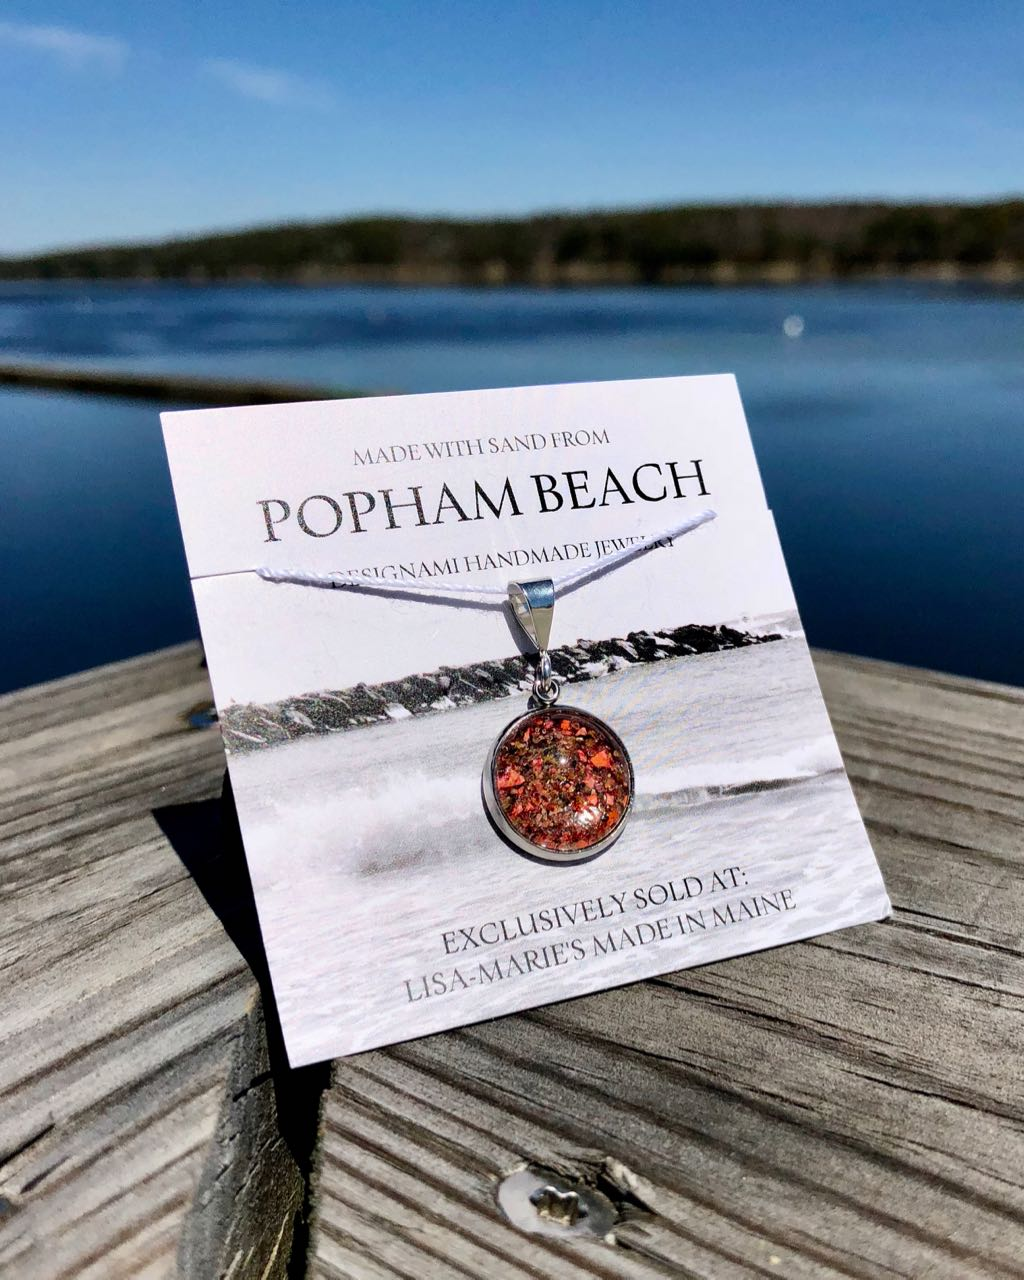 Popham Beach Sand with Lobster Shell Earrings,Popham Beach Sand with Lobster Shell Jewelry